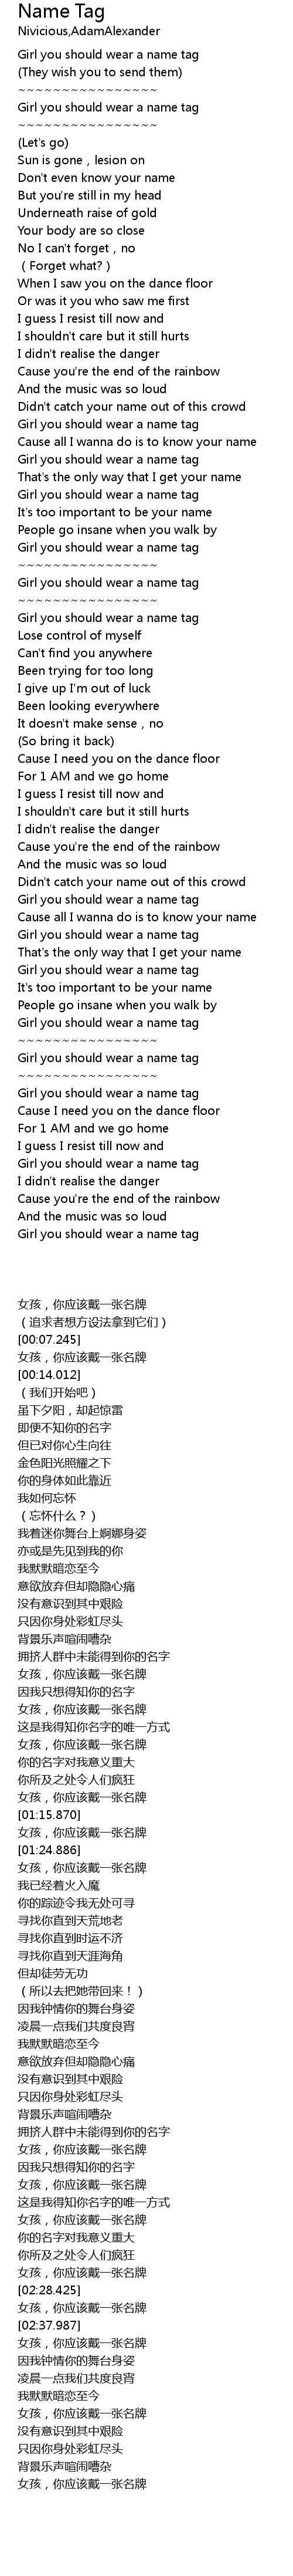 Name Tag Lyrics Follow Lyrics